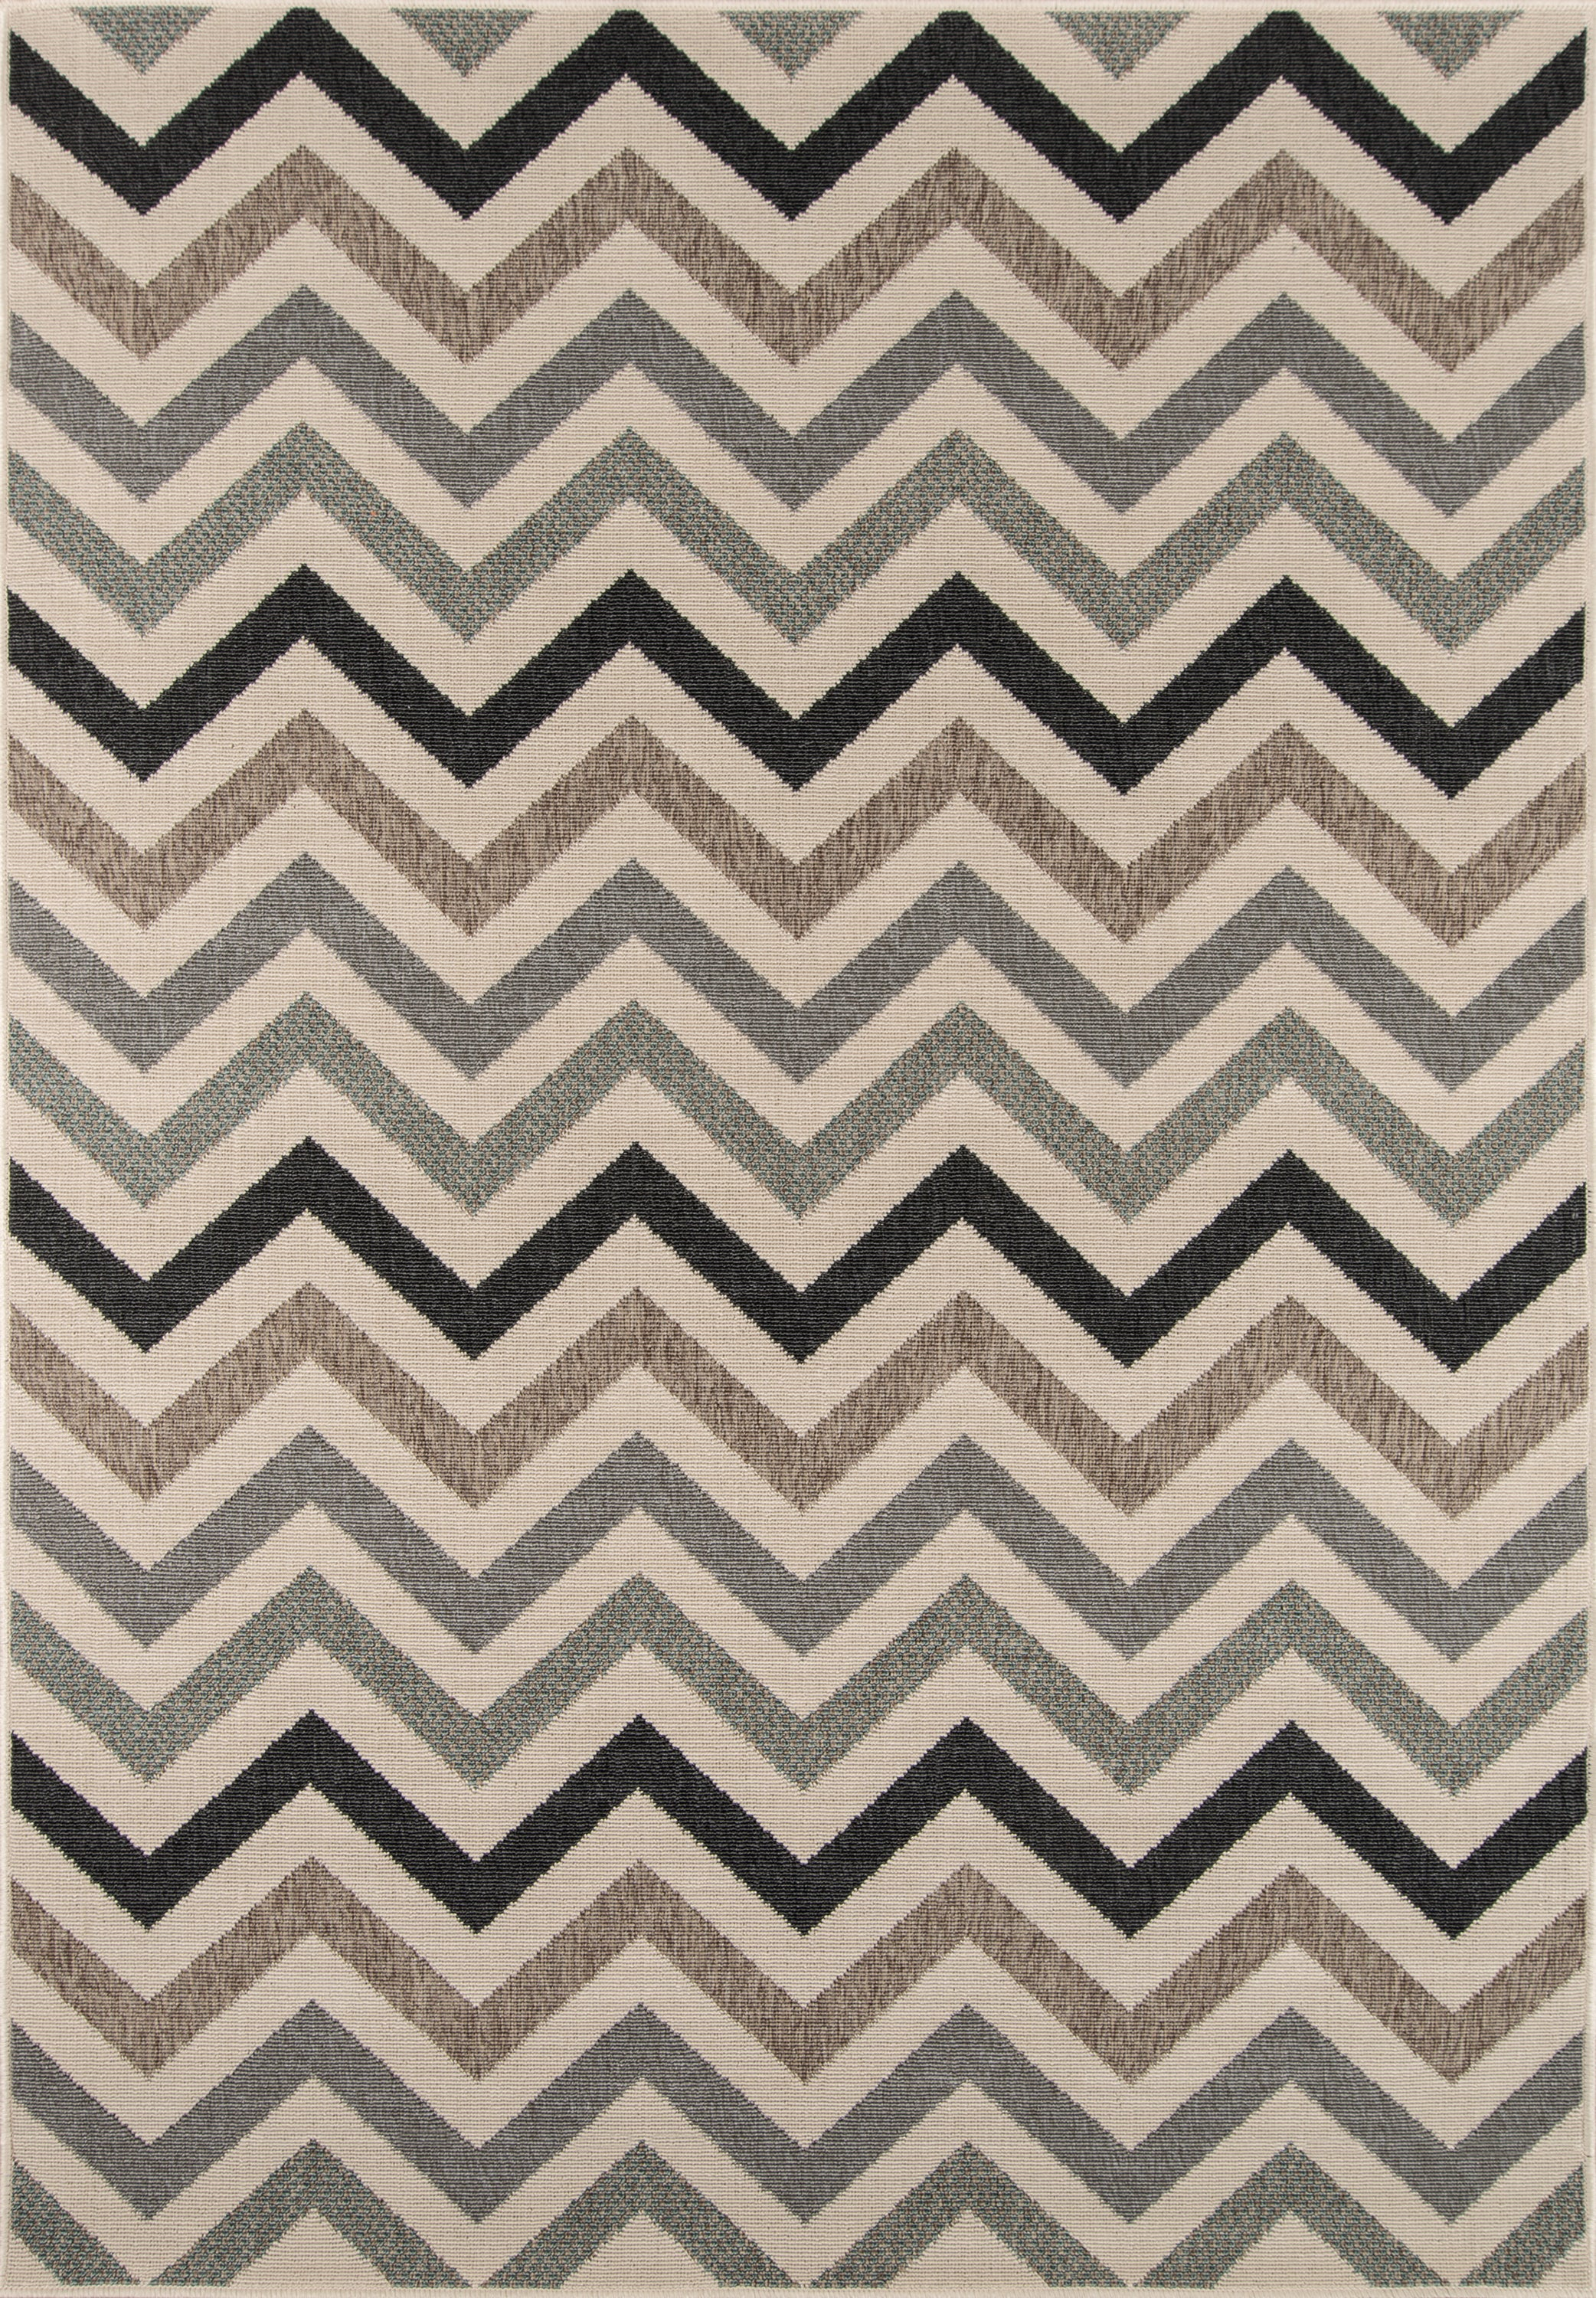 Rectangle 53x76 Lightgreen Chevron Machine Made Synthetics Contemporary recommended for Kitchen, Bedroom, Bathroom, Outdoor, Dining Room, Office, Hallway, Living Room